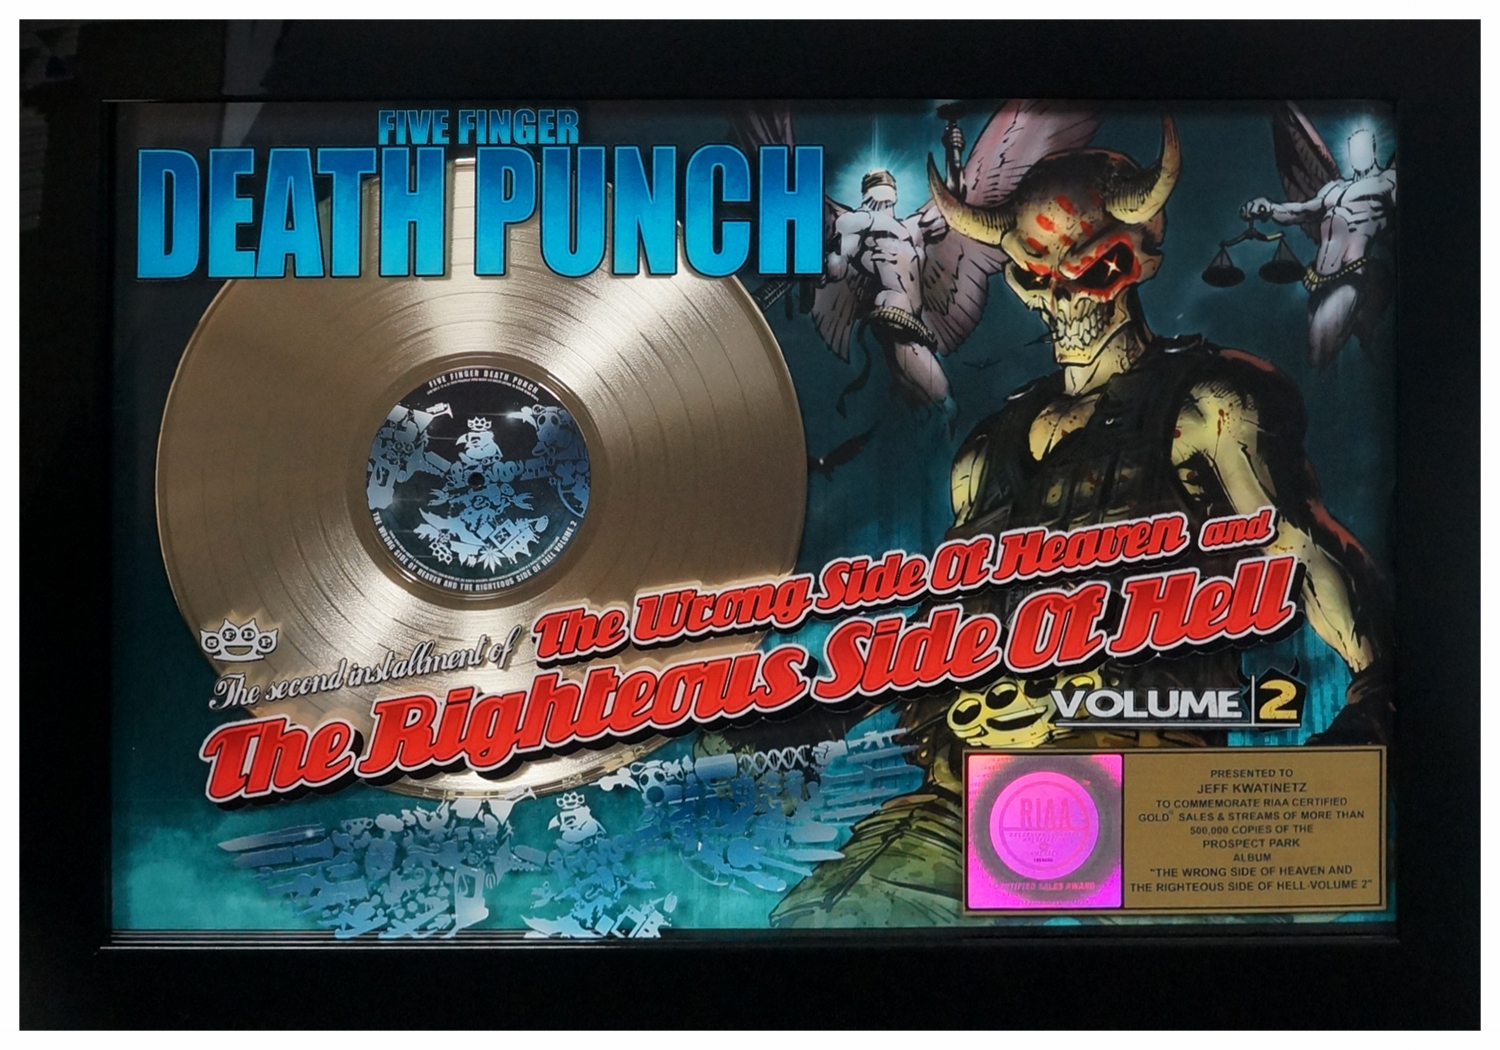 FFDP Wrong Side of Heaven V2 plaque photo.jpg